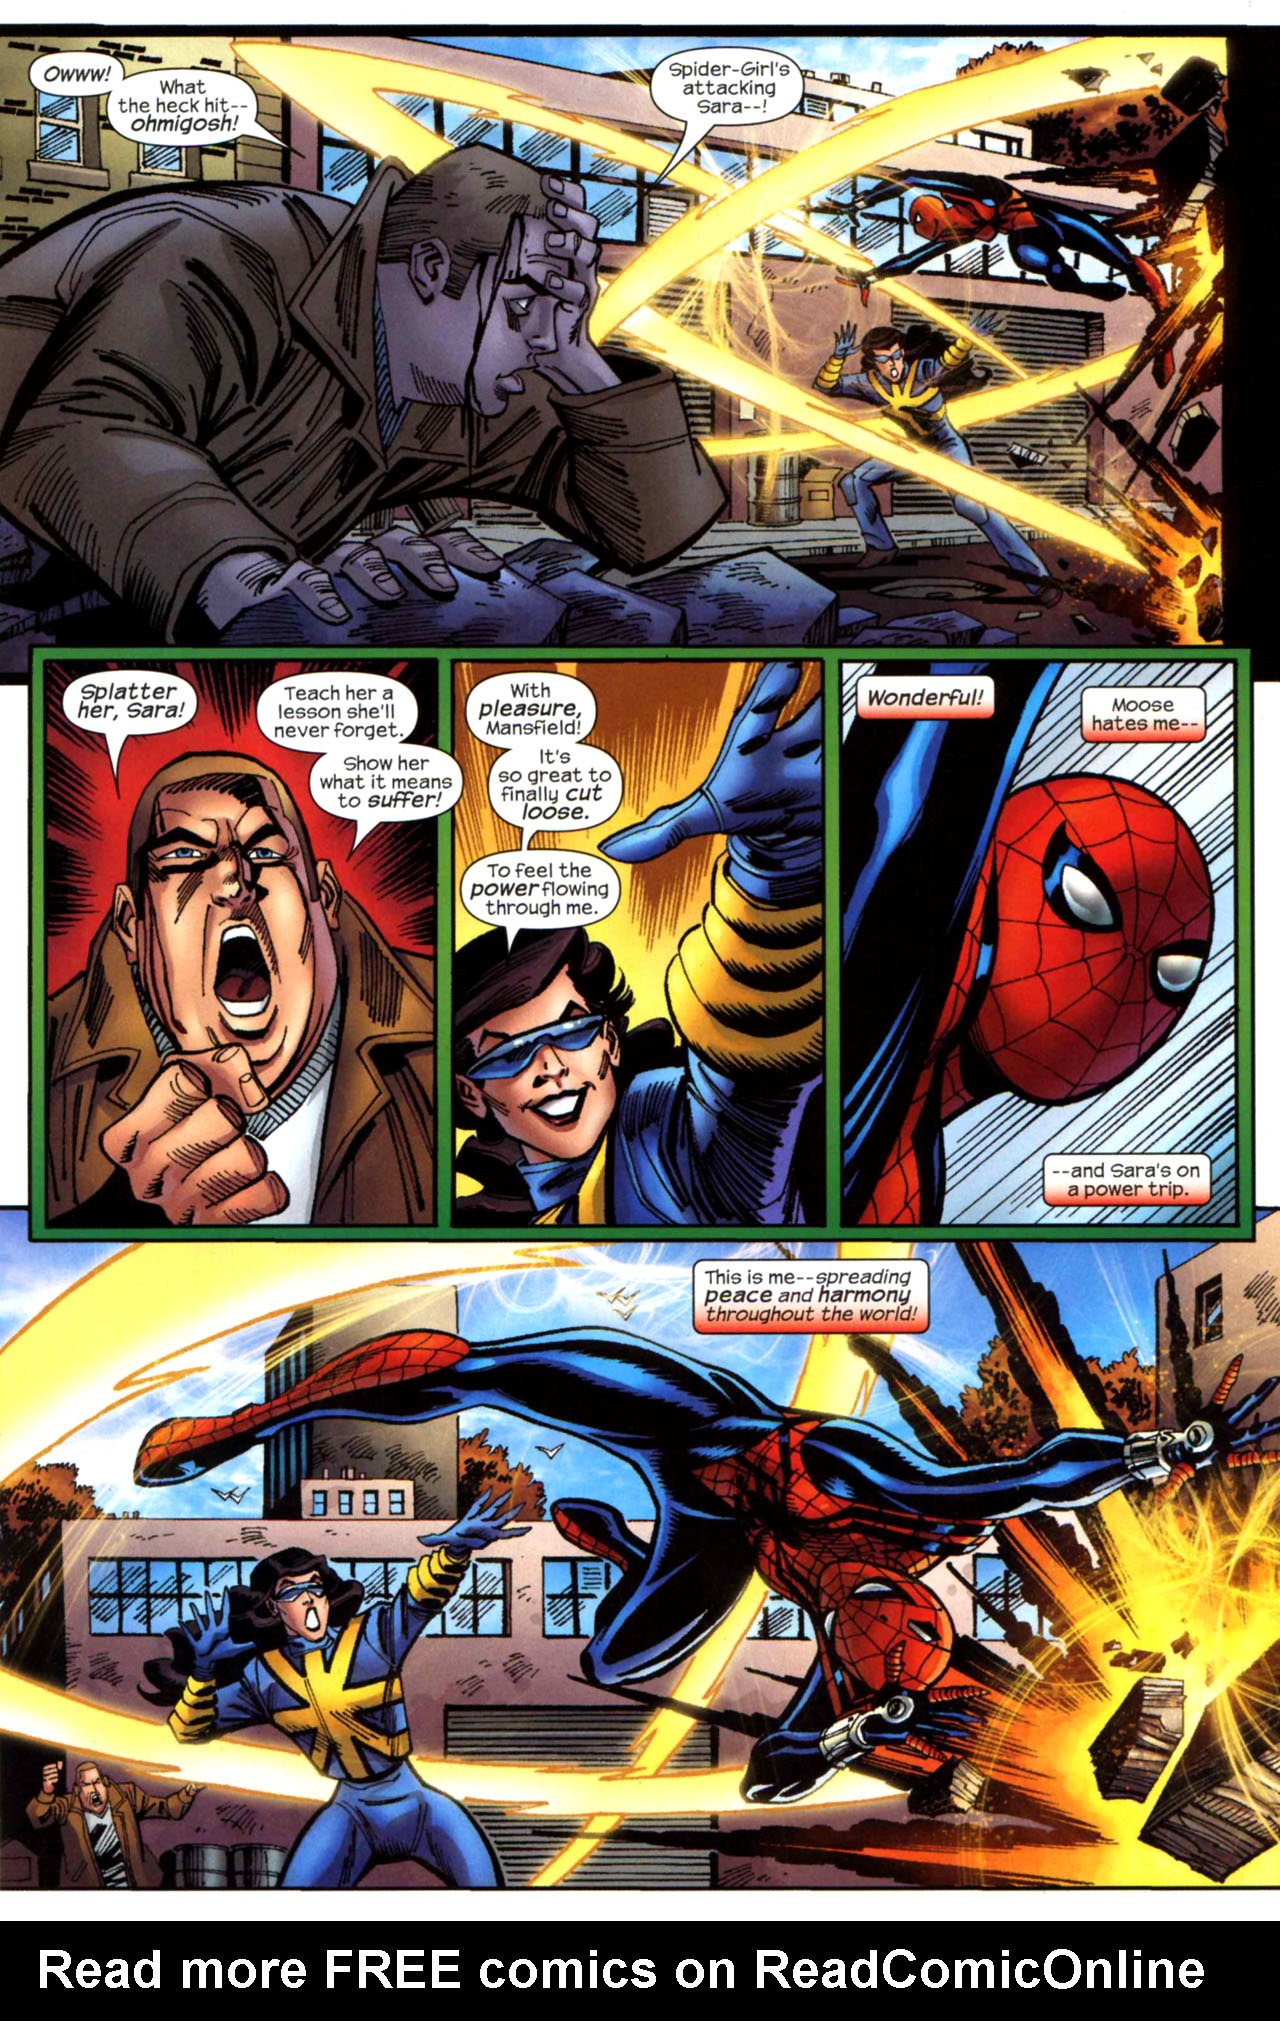 Read online Amazing Spider-Girl comic -  Issue #21 - 20